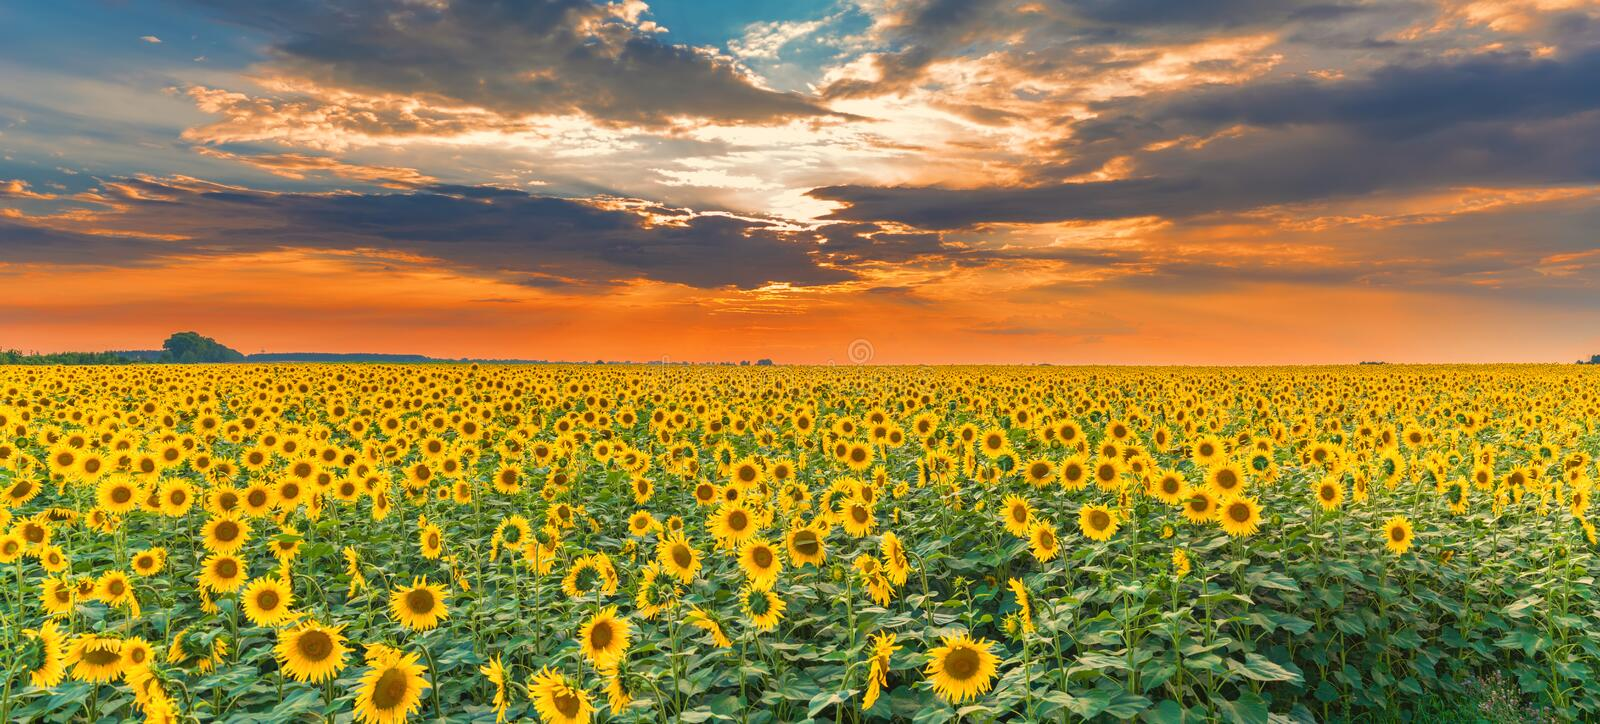 Sunflower field on sunset. Beautiful nature landscape panorama. Farm field idyllic scene. stock photos